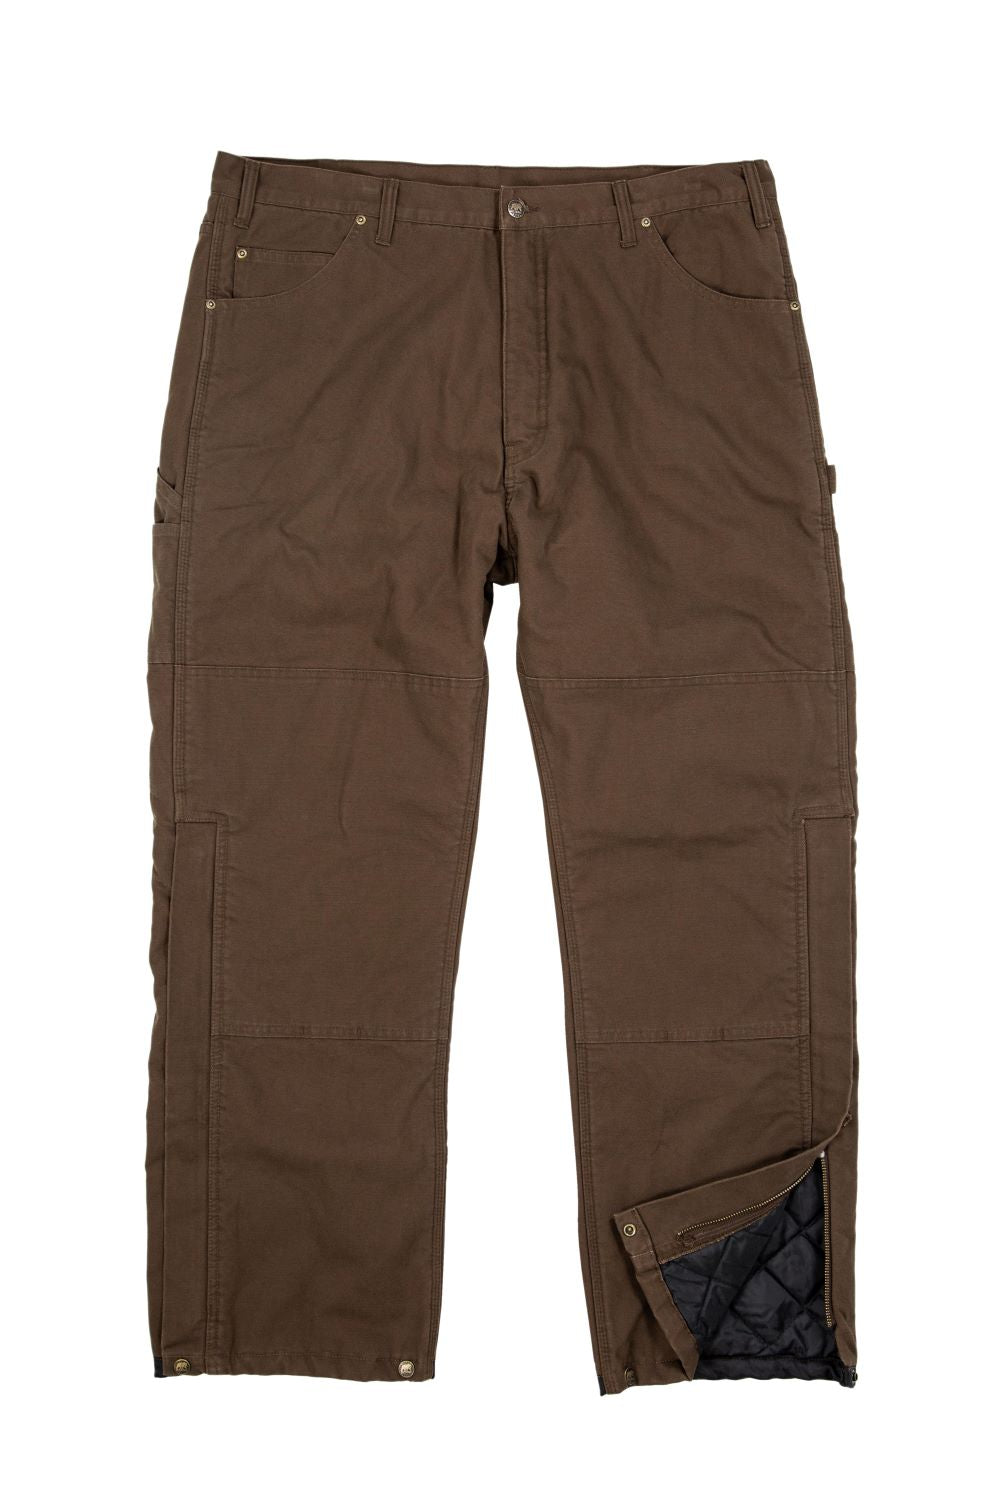 'Berne' Men's Bulldozer Insulated Outer Pant - Bark